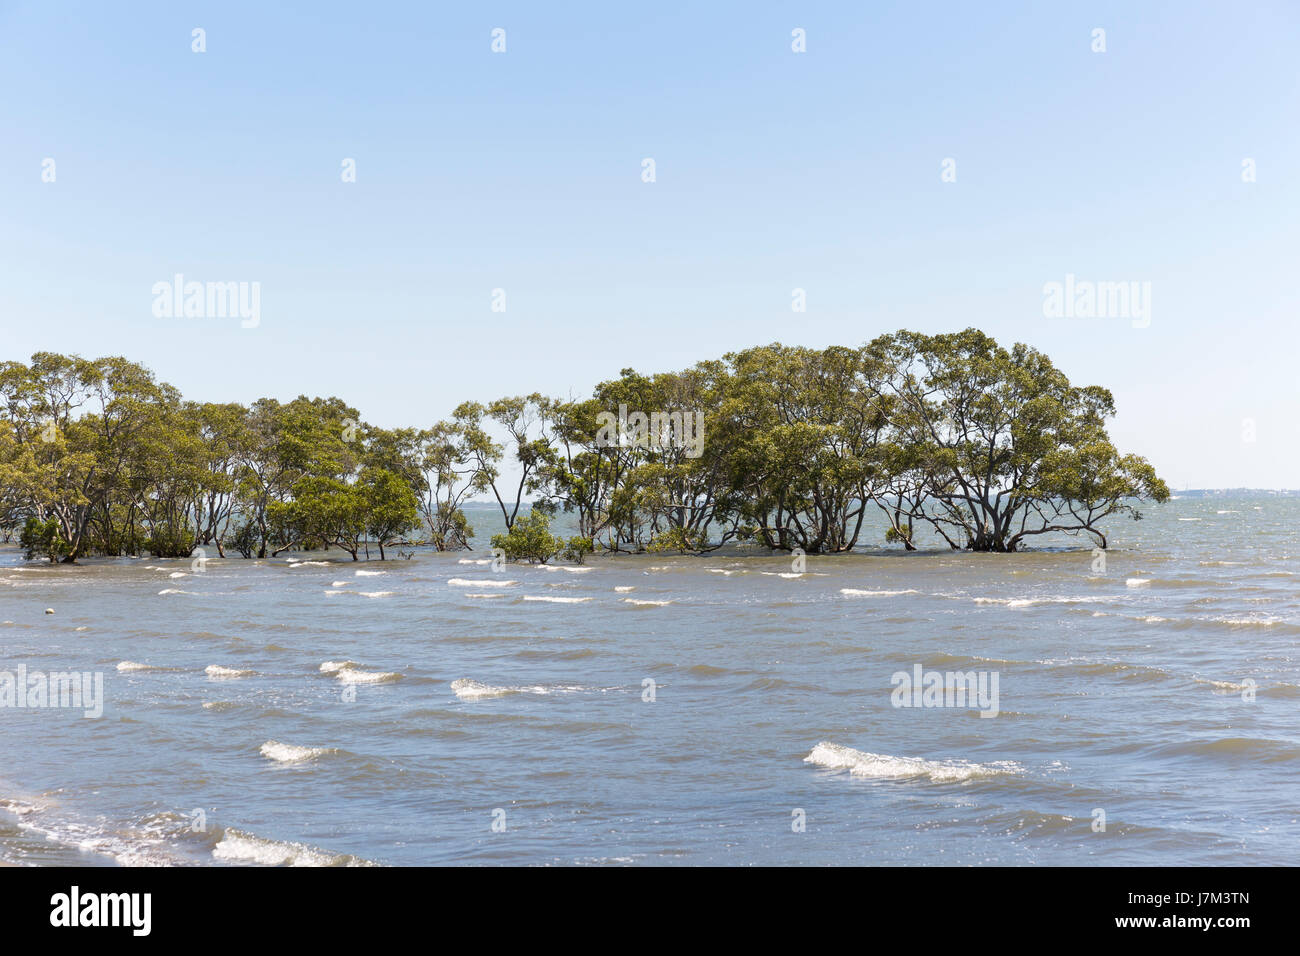 Trees are in the seashore. - Stock Image